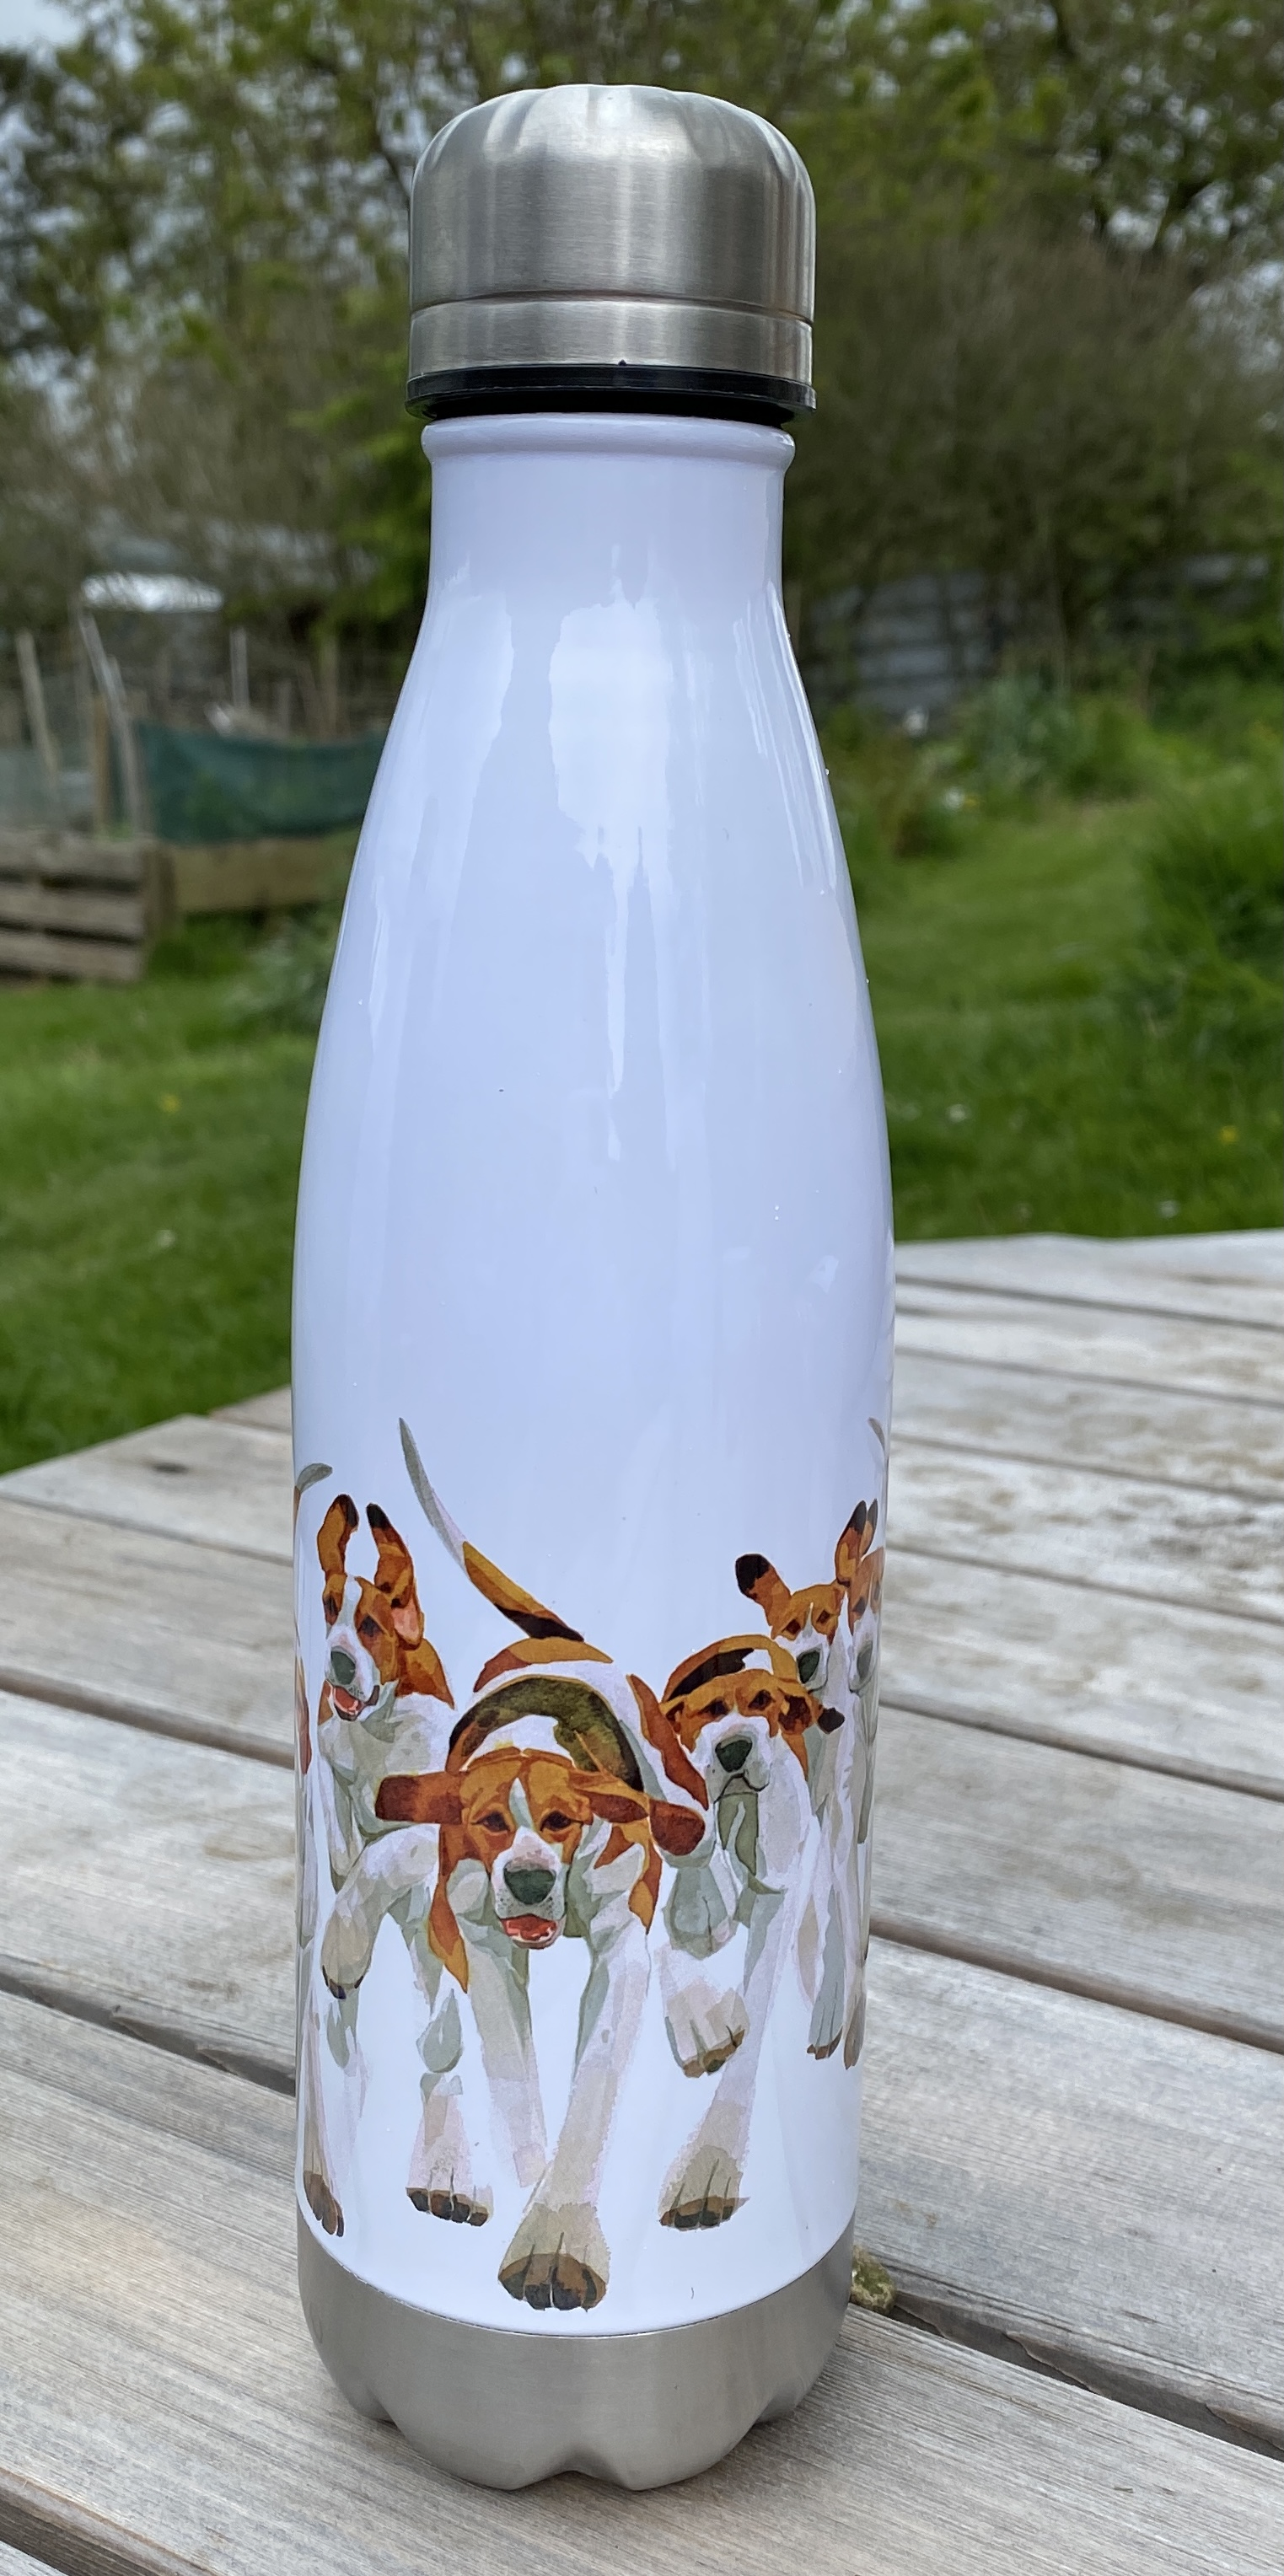 Stainless Steel Drinking Bottle - Hounds image